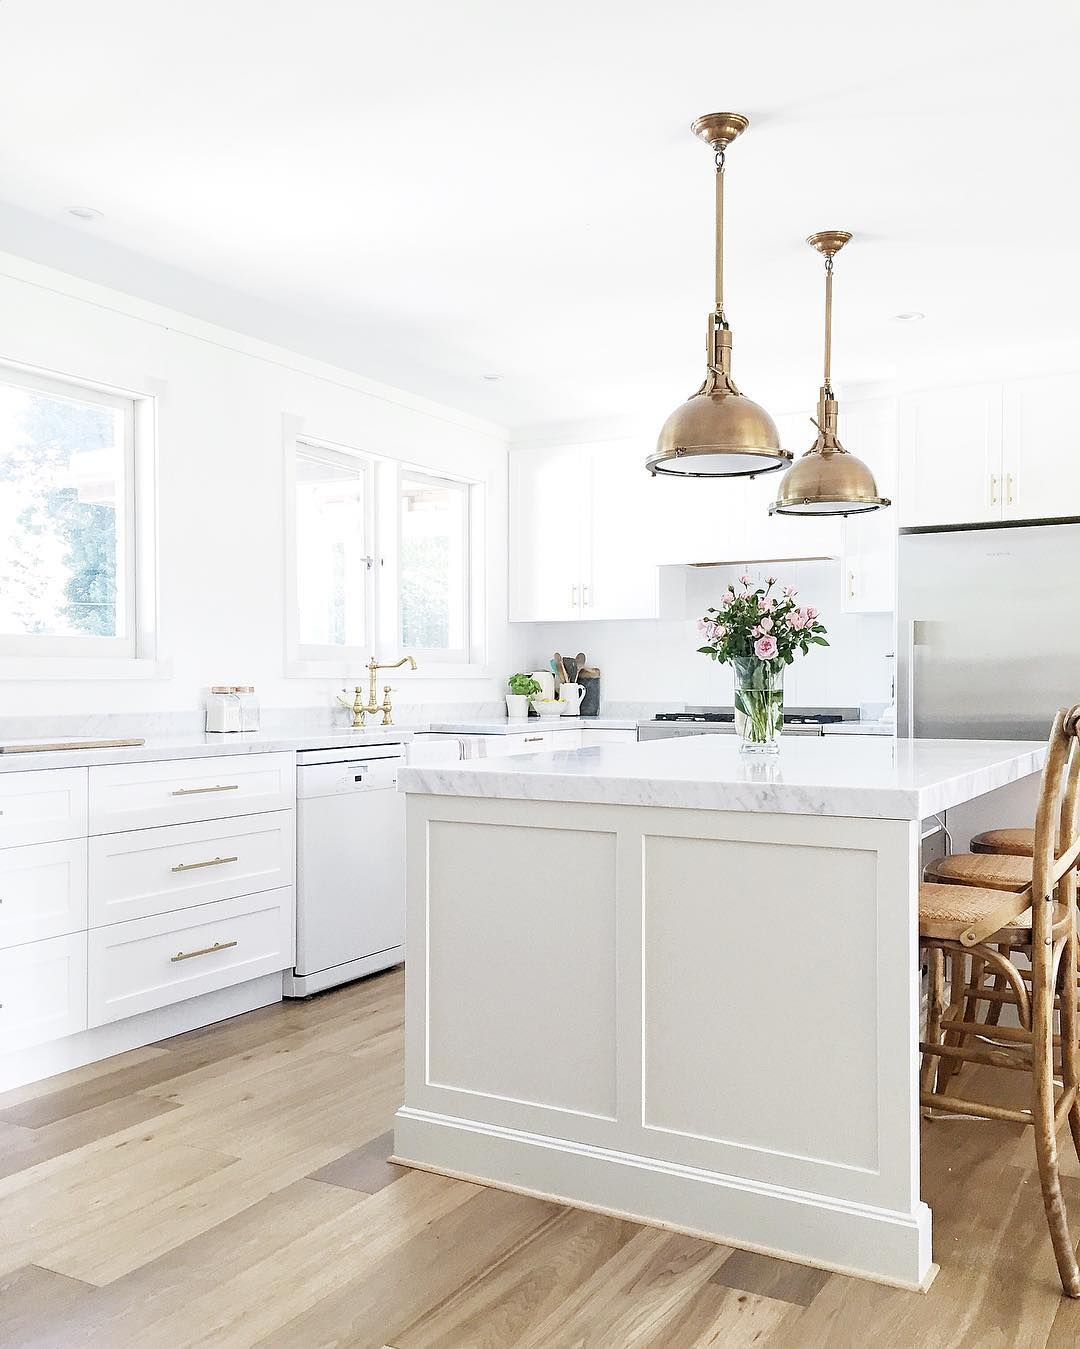 Farmhouse kitchen island lighting - Modern Farmhouse Kitchen Island In Dulux Pale Tendril And Perimeter Cabinetry In Dulux